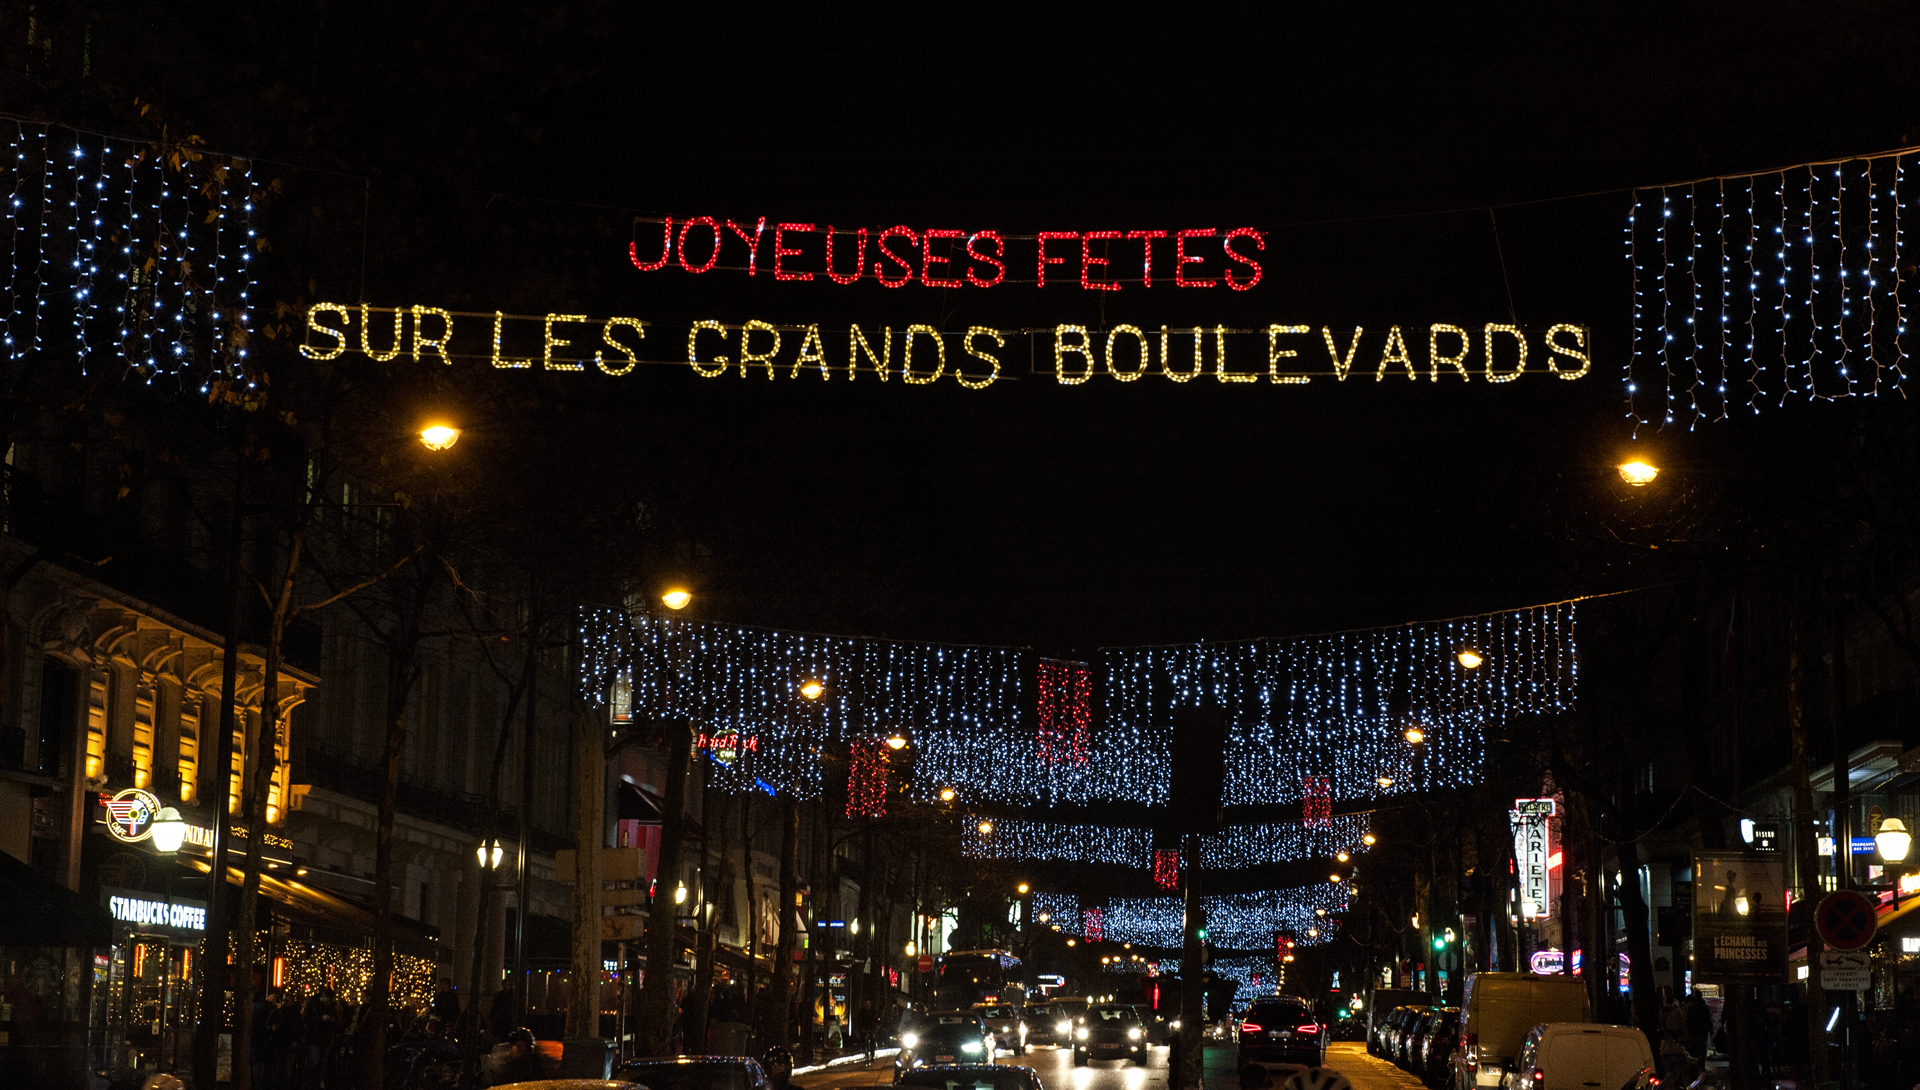 Inauguration des illuminations de Noel des Grands Boulevards 2017-2018